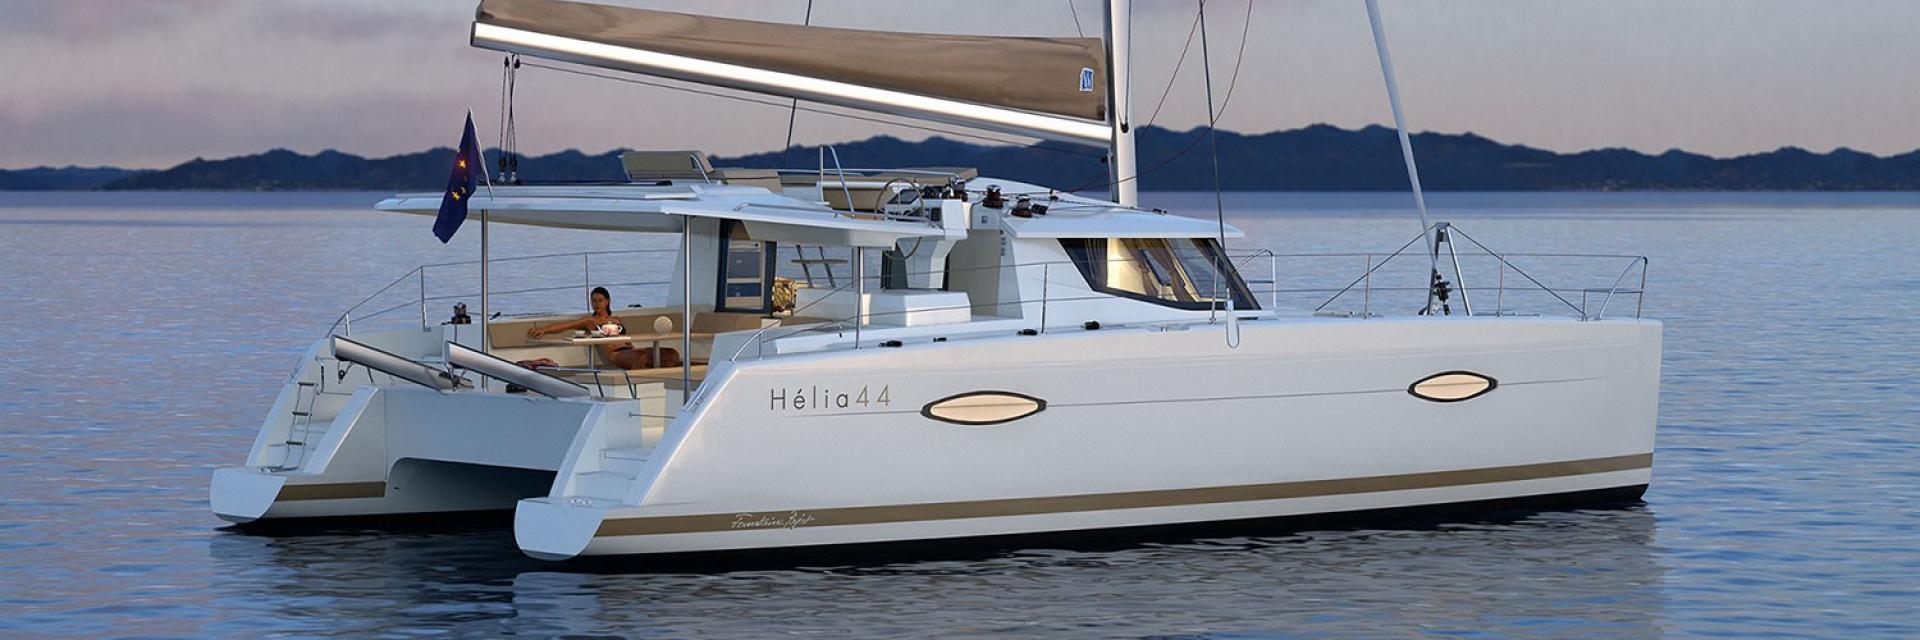 Hélia 44, photo Fountaine Pajot